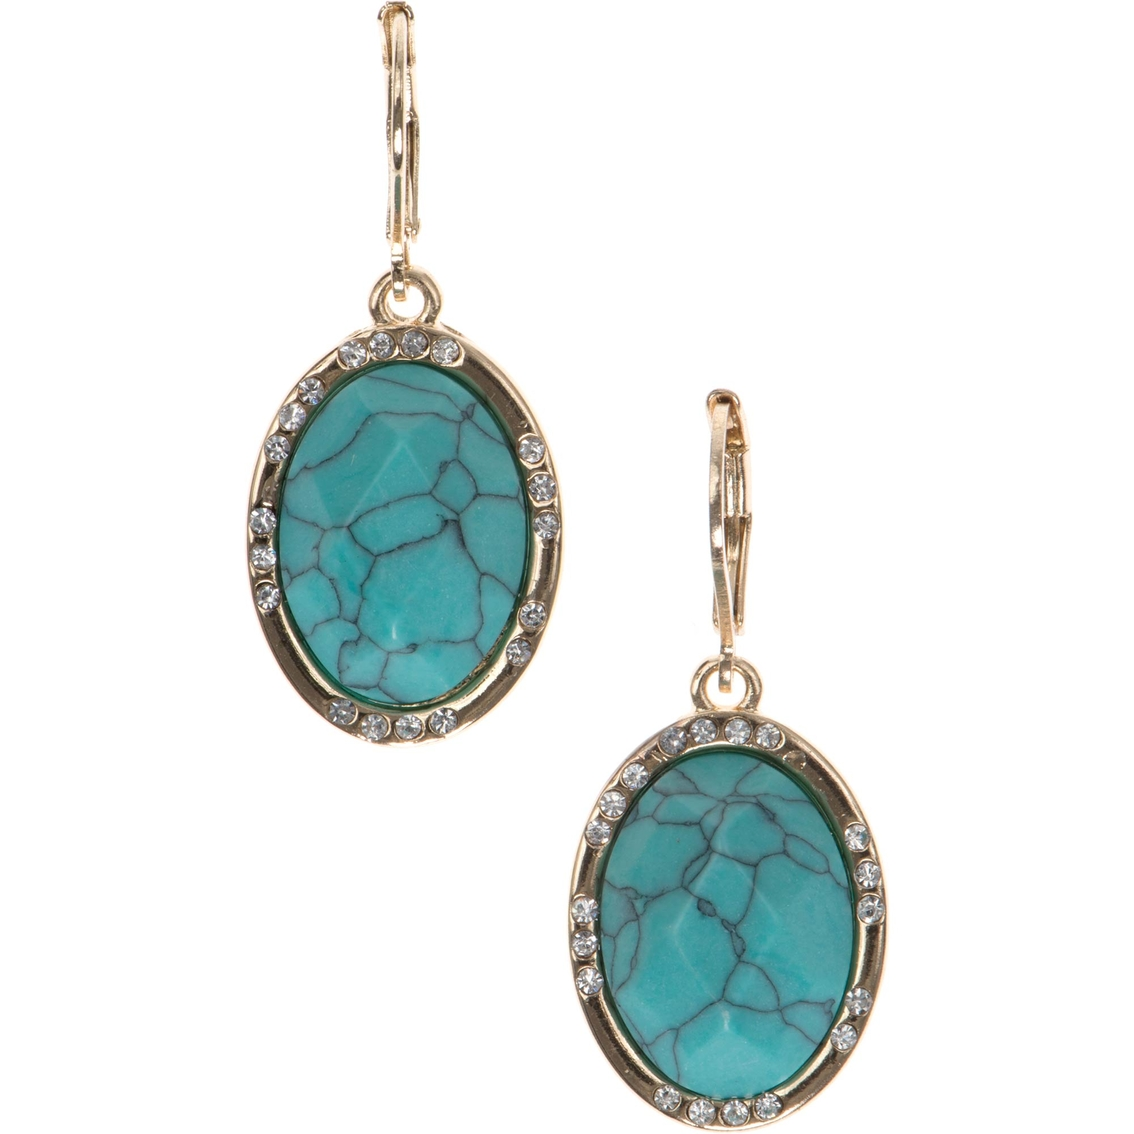 Anne Klein Goldtone Turquoise Drop Earrings